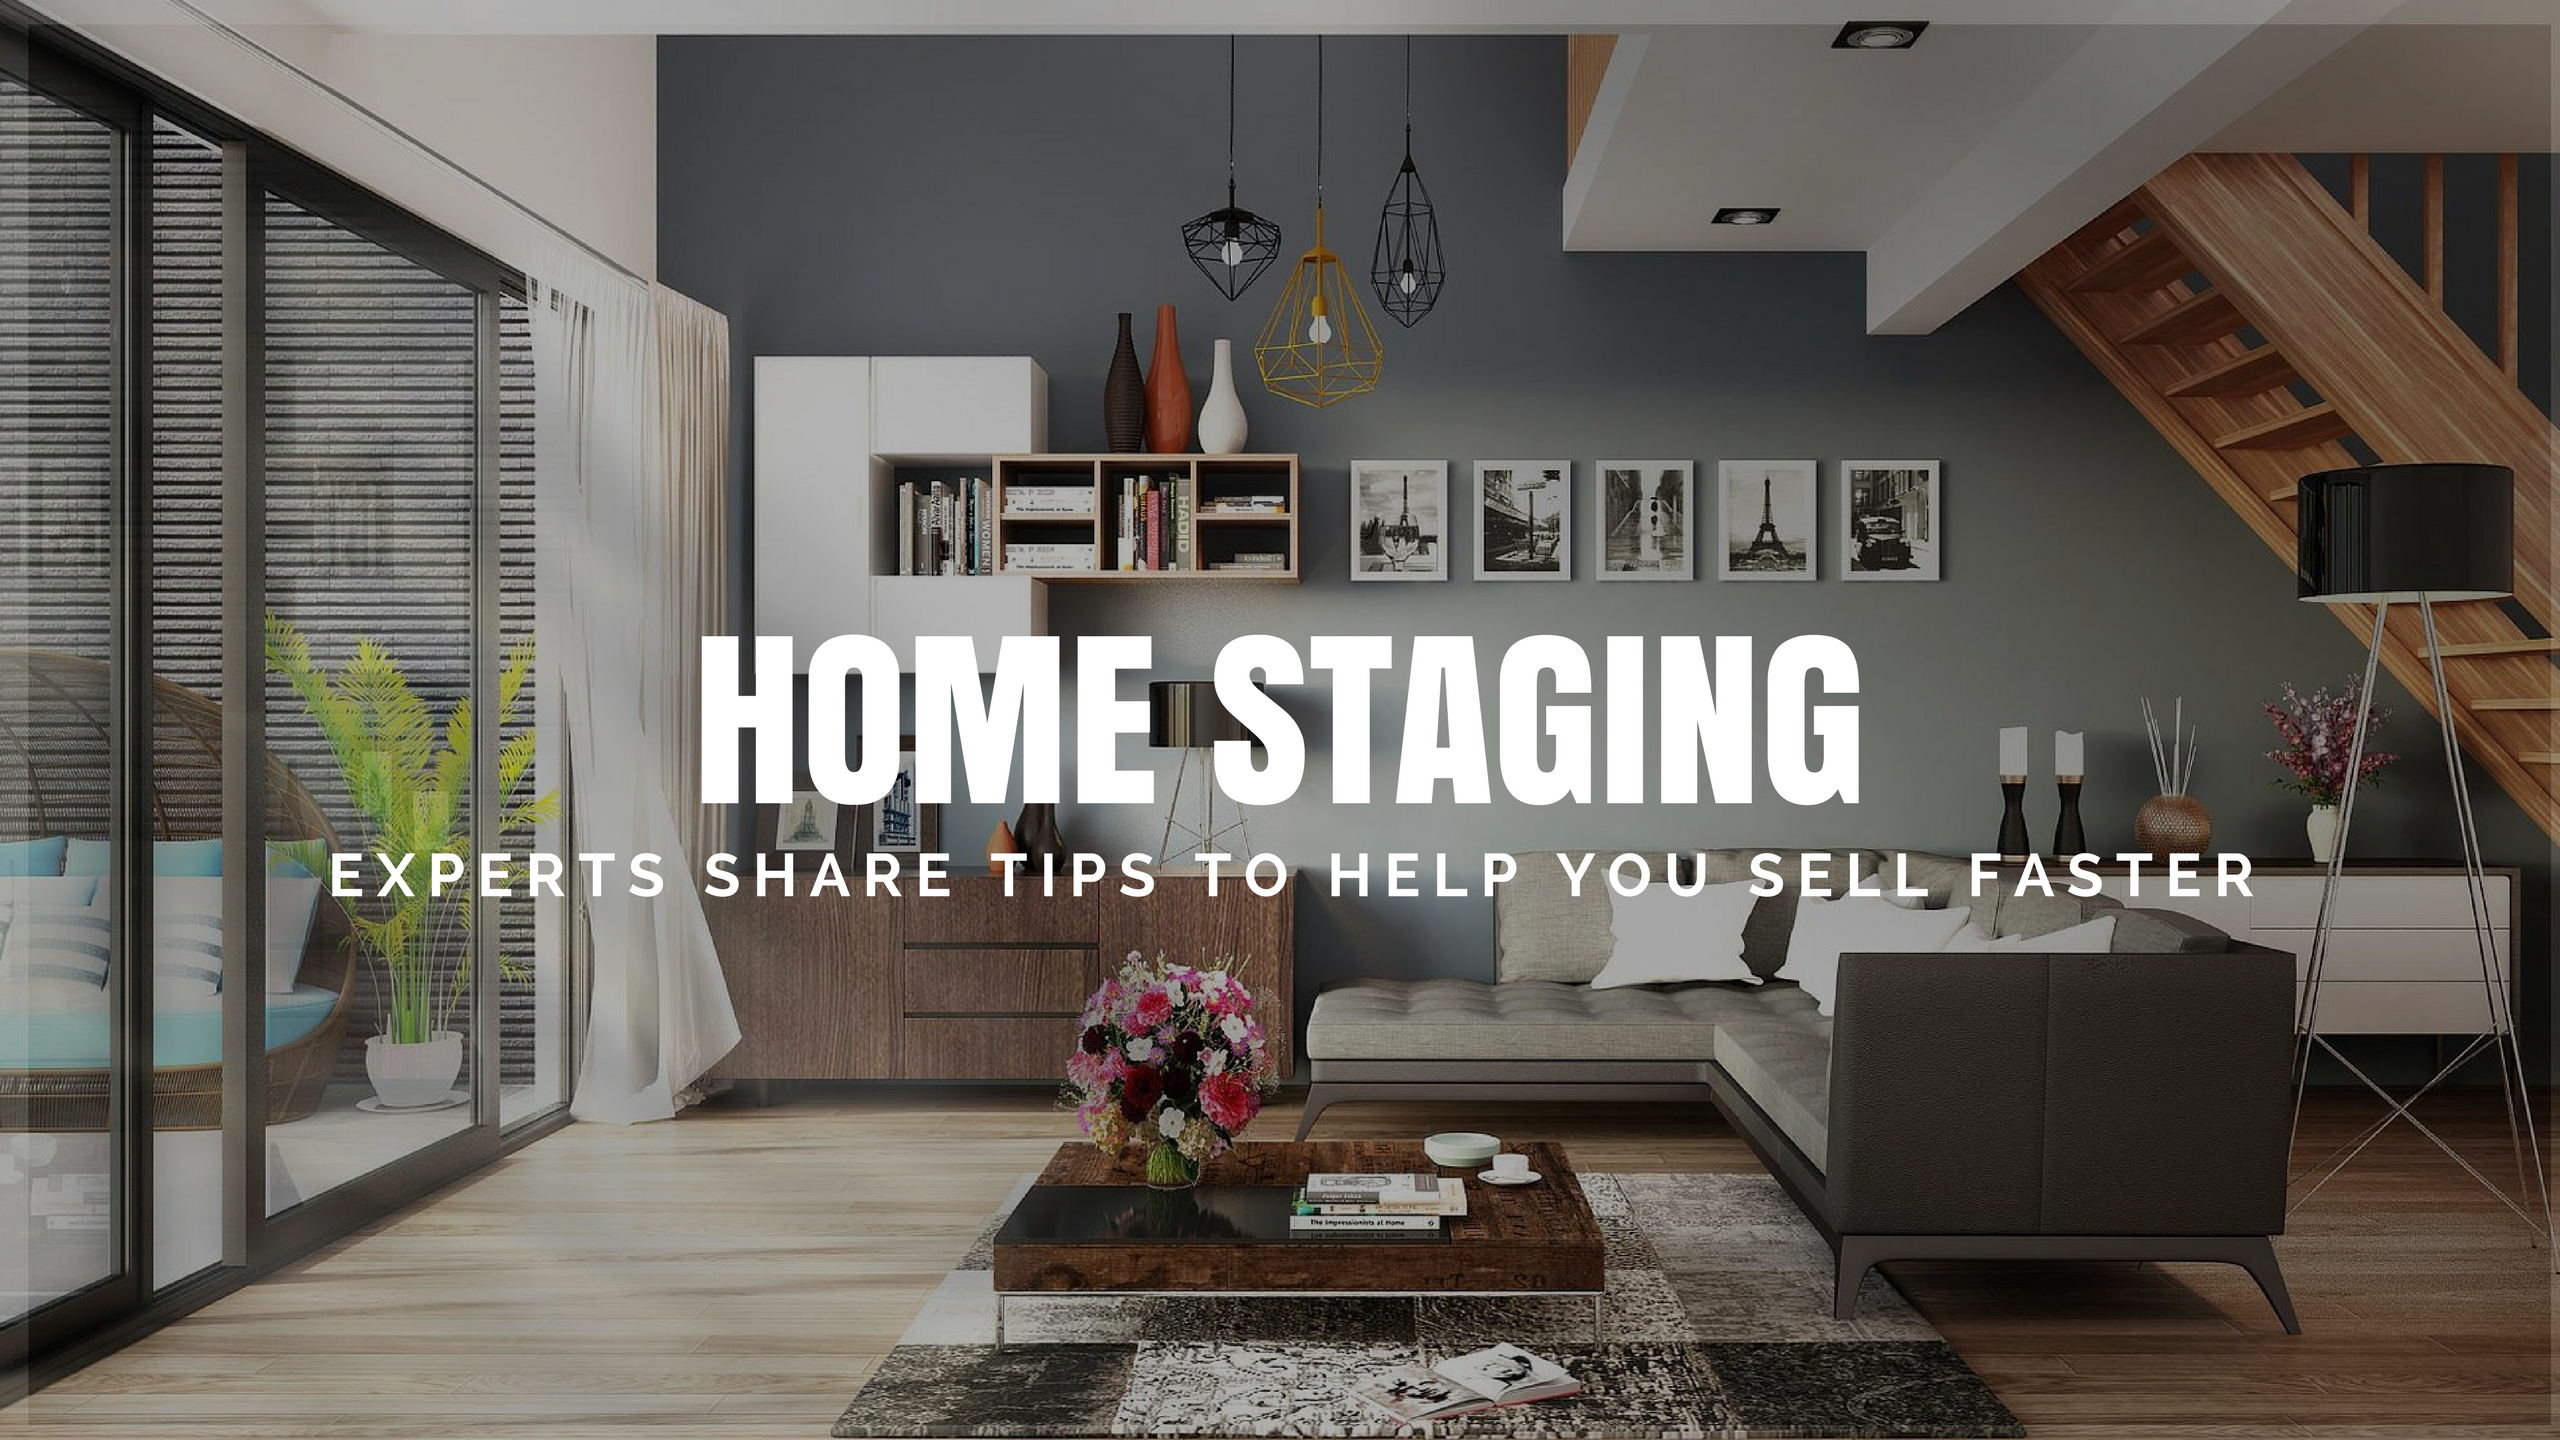 Home Staging Tips - Industry Experts Share Staging Advice on home tips and tricks, home construction tips, nate berkus painting tips, home packing tips, home color tips, home real estate, home inspection tips, landscaping tips, home selling tips, home decor tips, real estate tips, home audio tips, insurance tips, home remodeling tips, home black and white, home organizing, home survival tips, home security tips, home maintenance tips, home management tips,